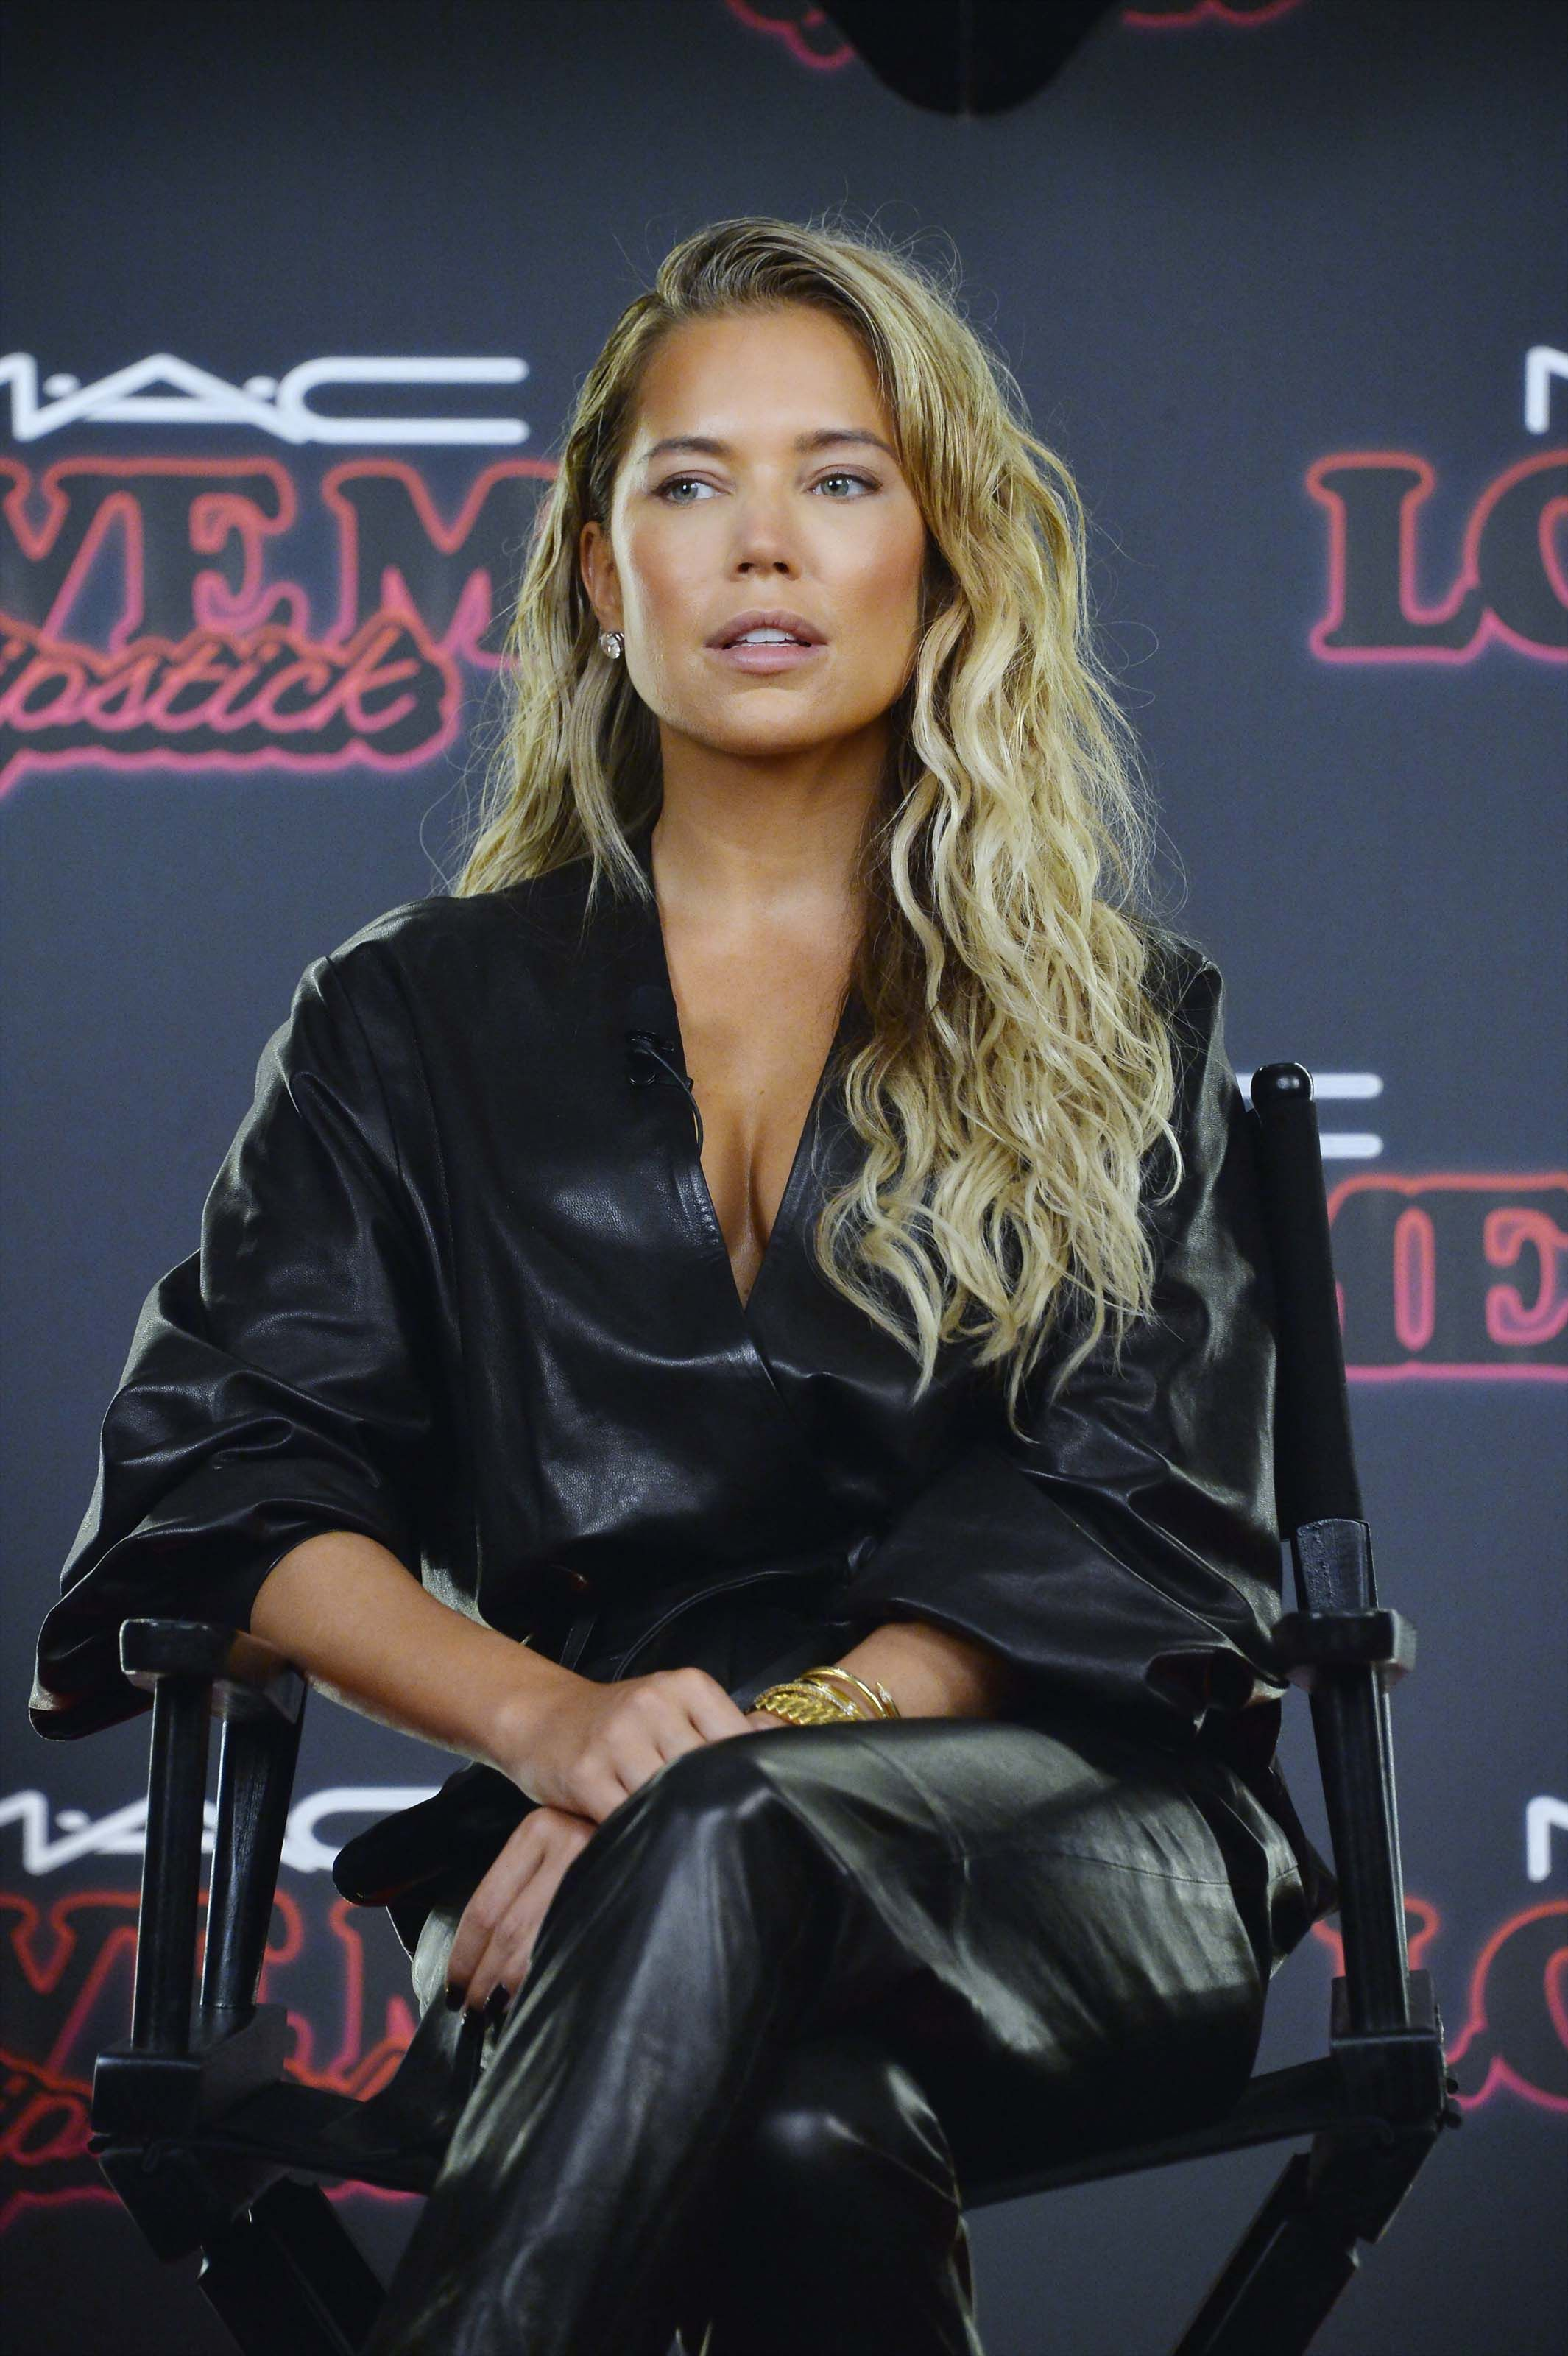 Sylvie Meis in awesome leather outfit Beroemdheden